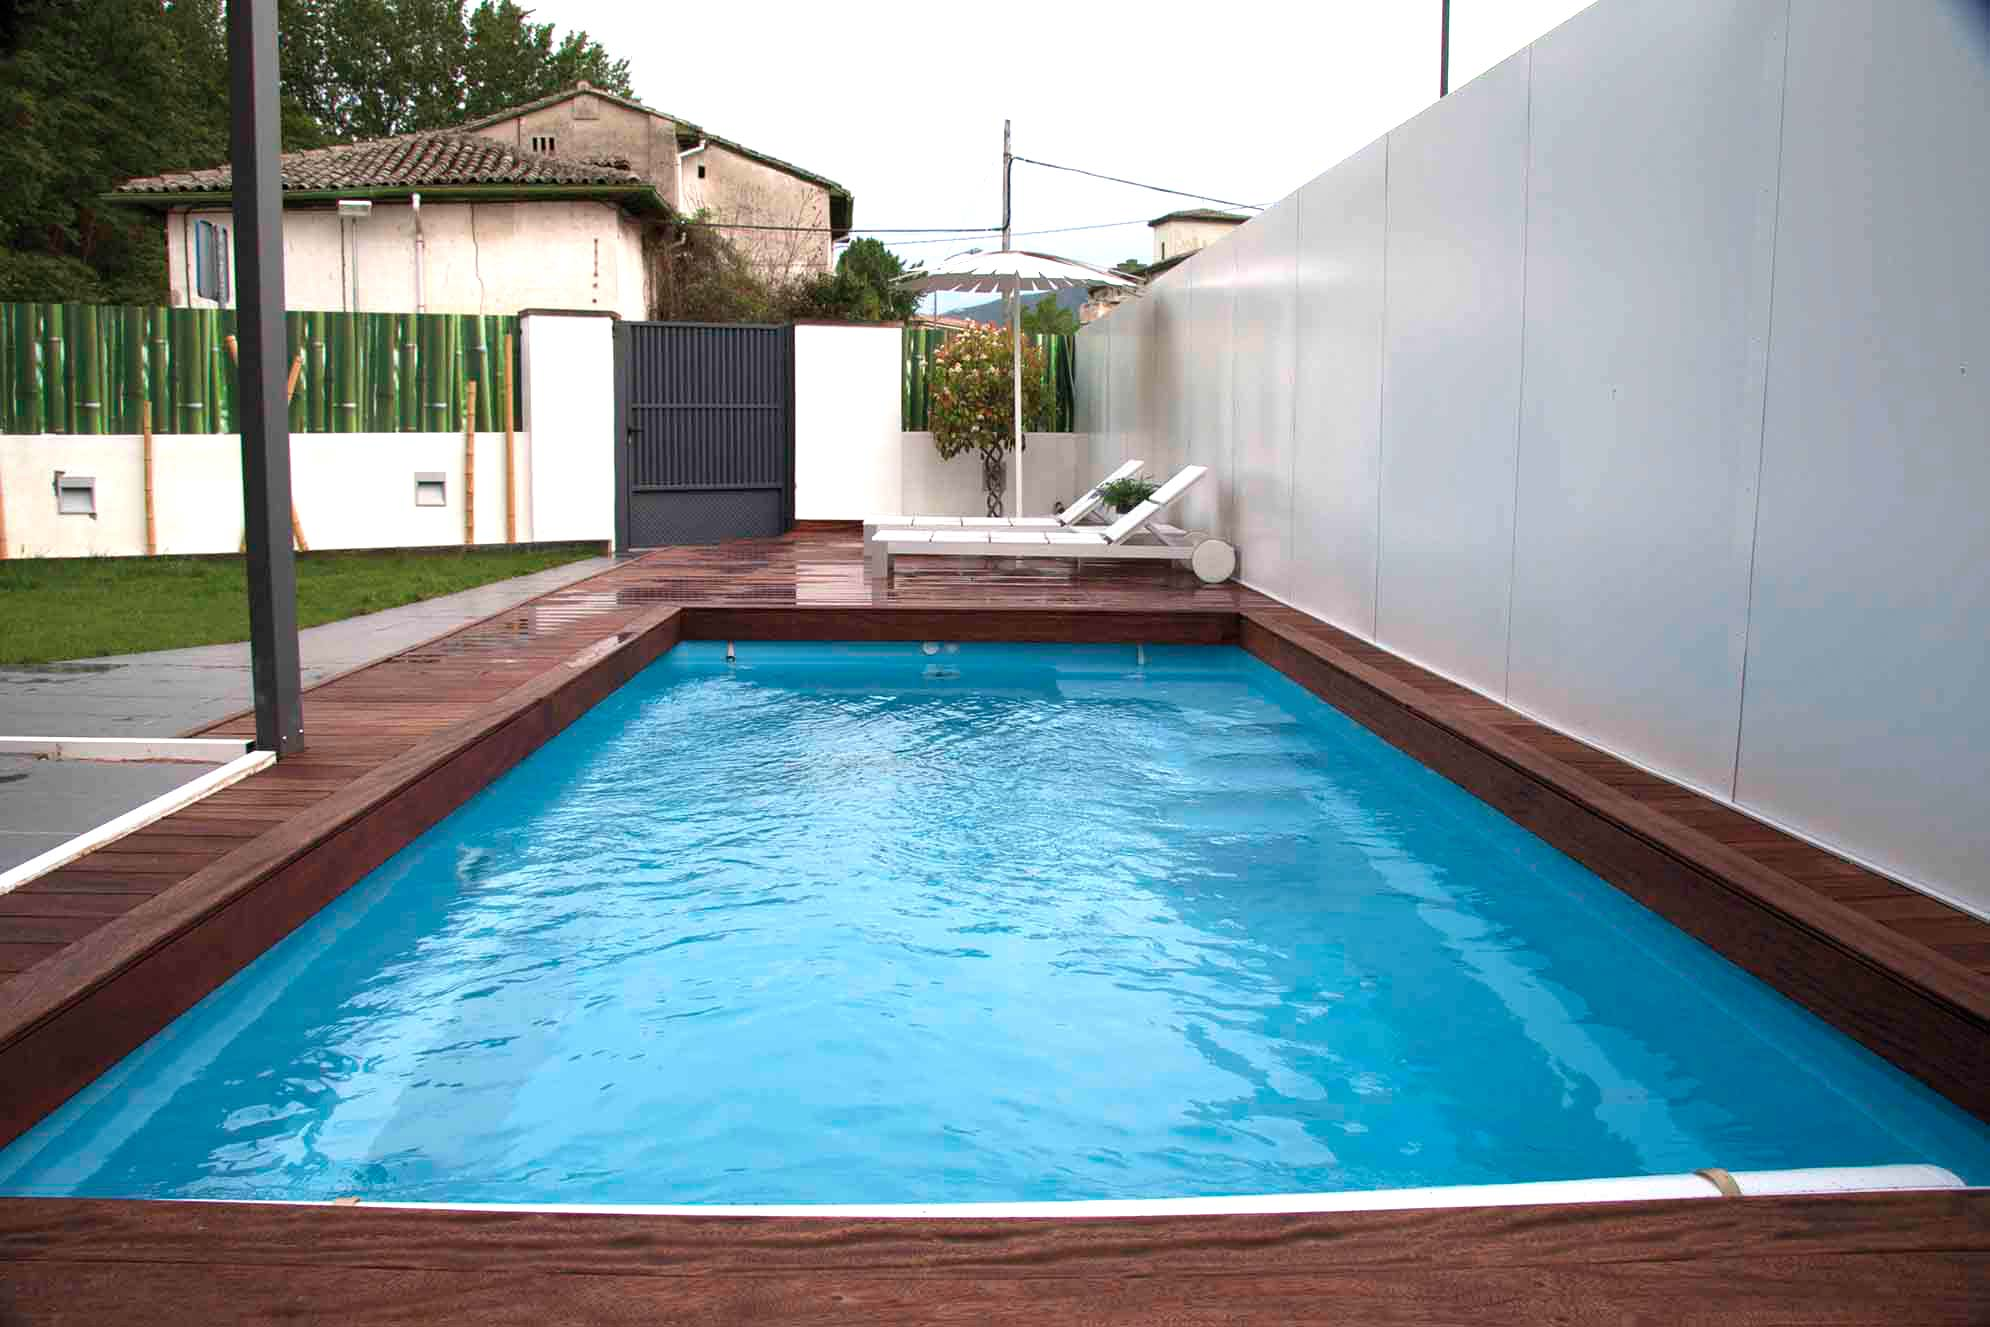 Piscinas y estanques proyectos echarri for Constructor piscinas